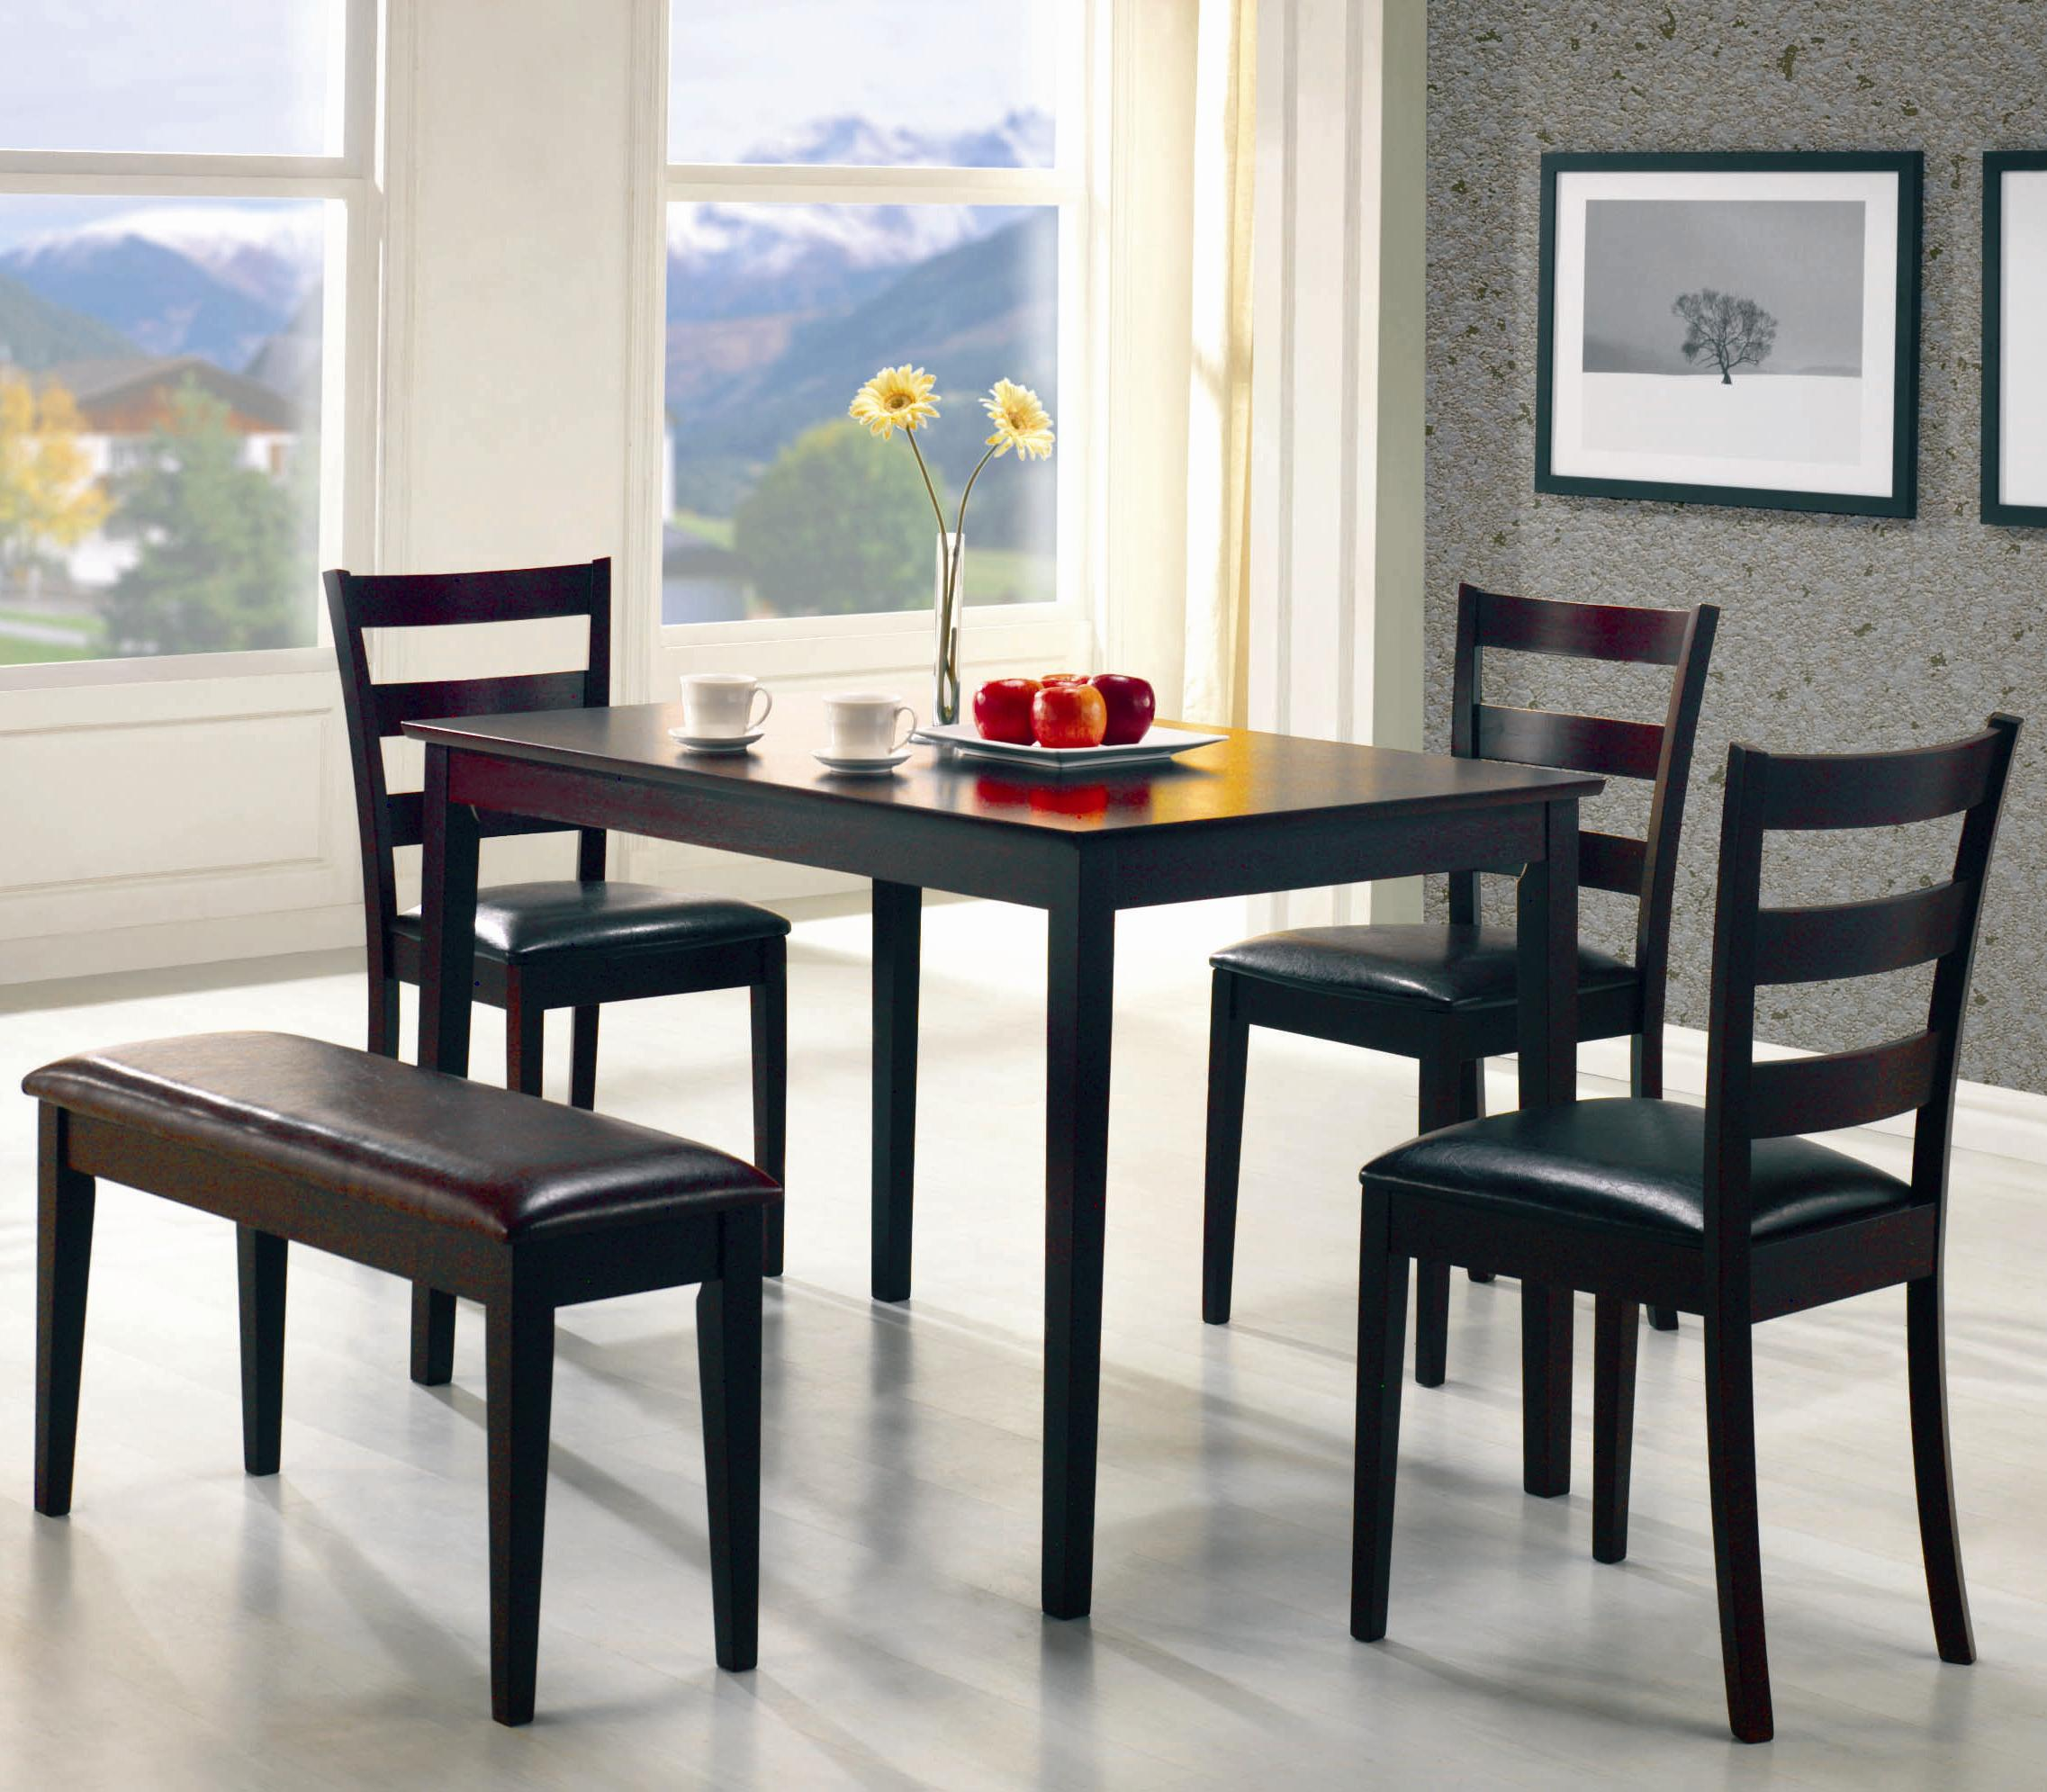 Coaster Taraval 5 Piece Dining Set   Item Number: 150232